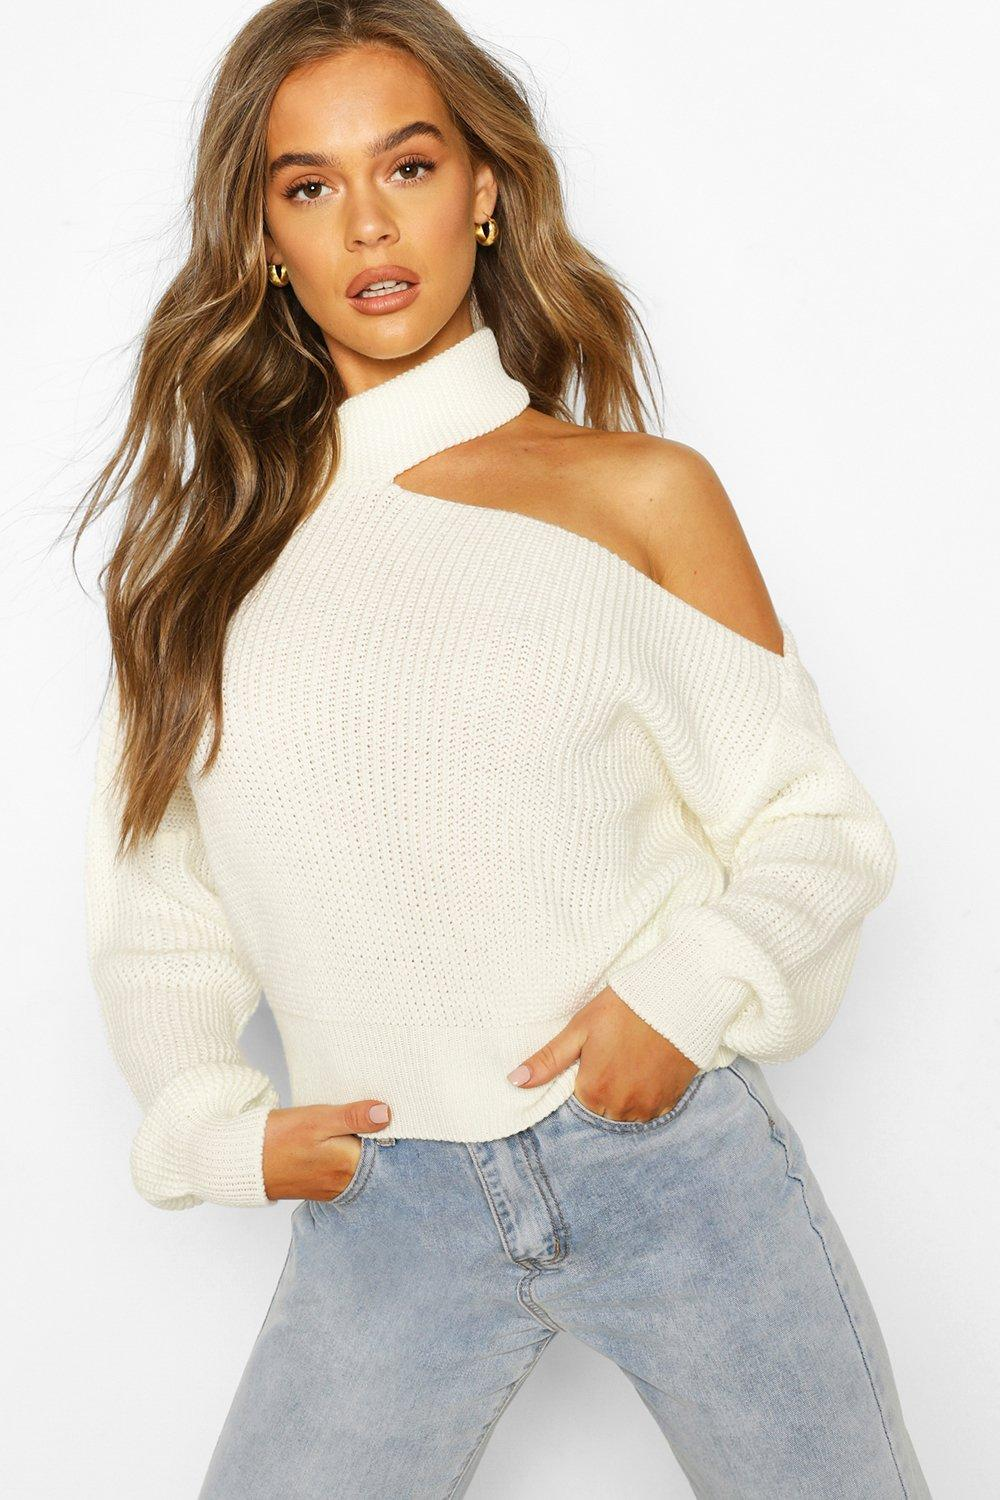 boohoo Womens Cut Out Knitted Jumper - White - S, White